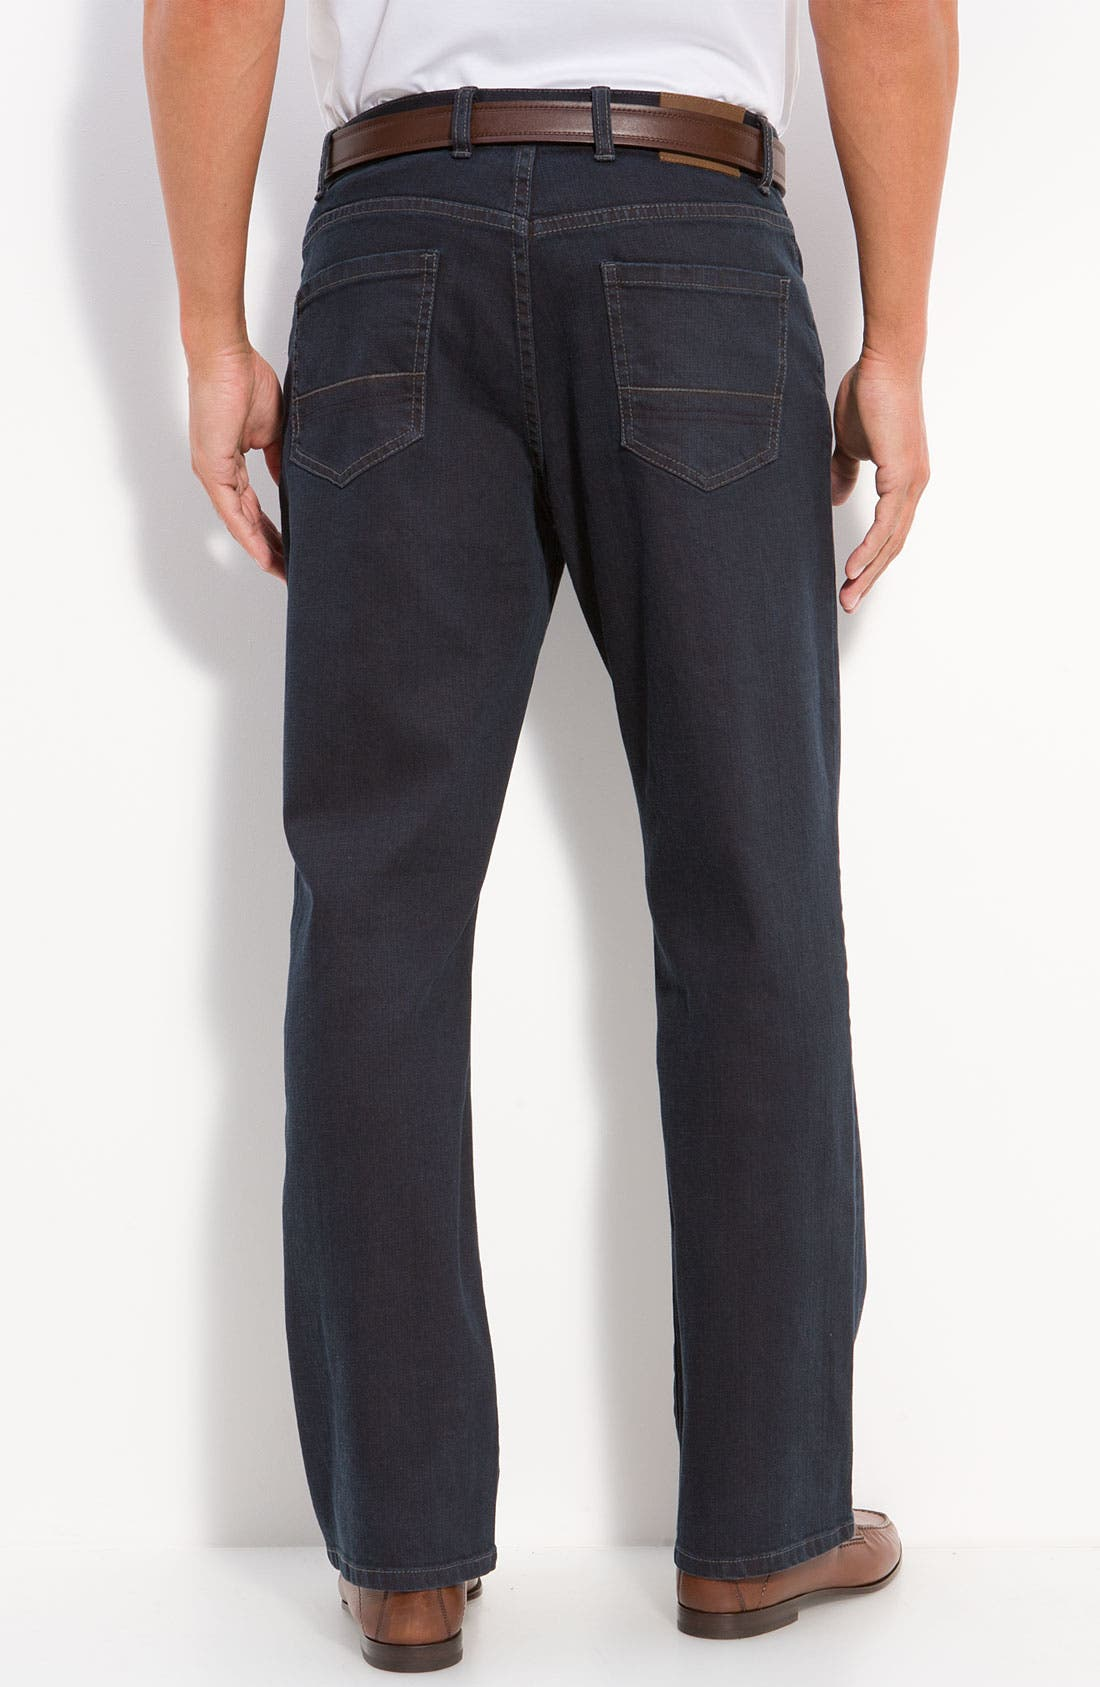 Alternate Image 2  - Cutter & Buck 'Madison Park' Jeans (Carbon) (Big & Tall)